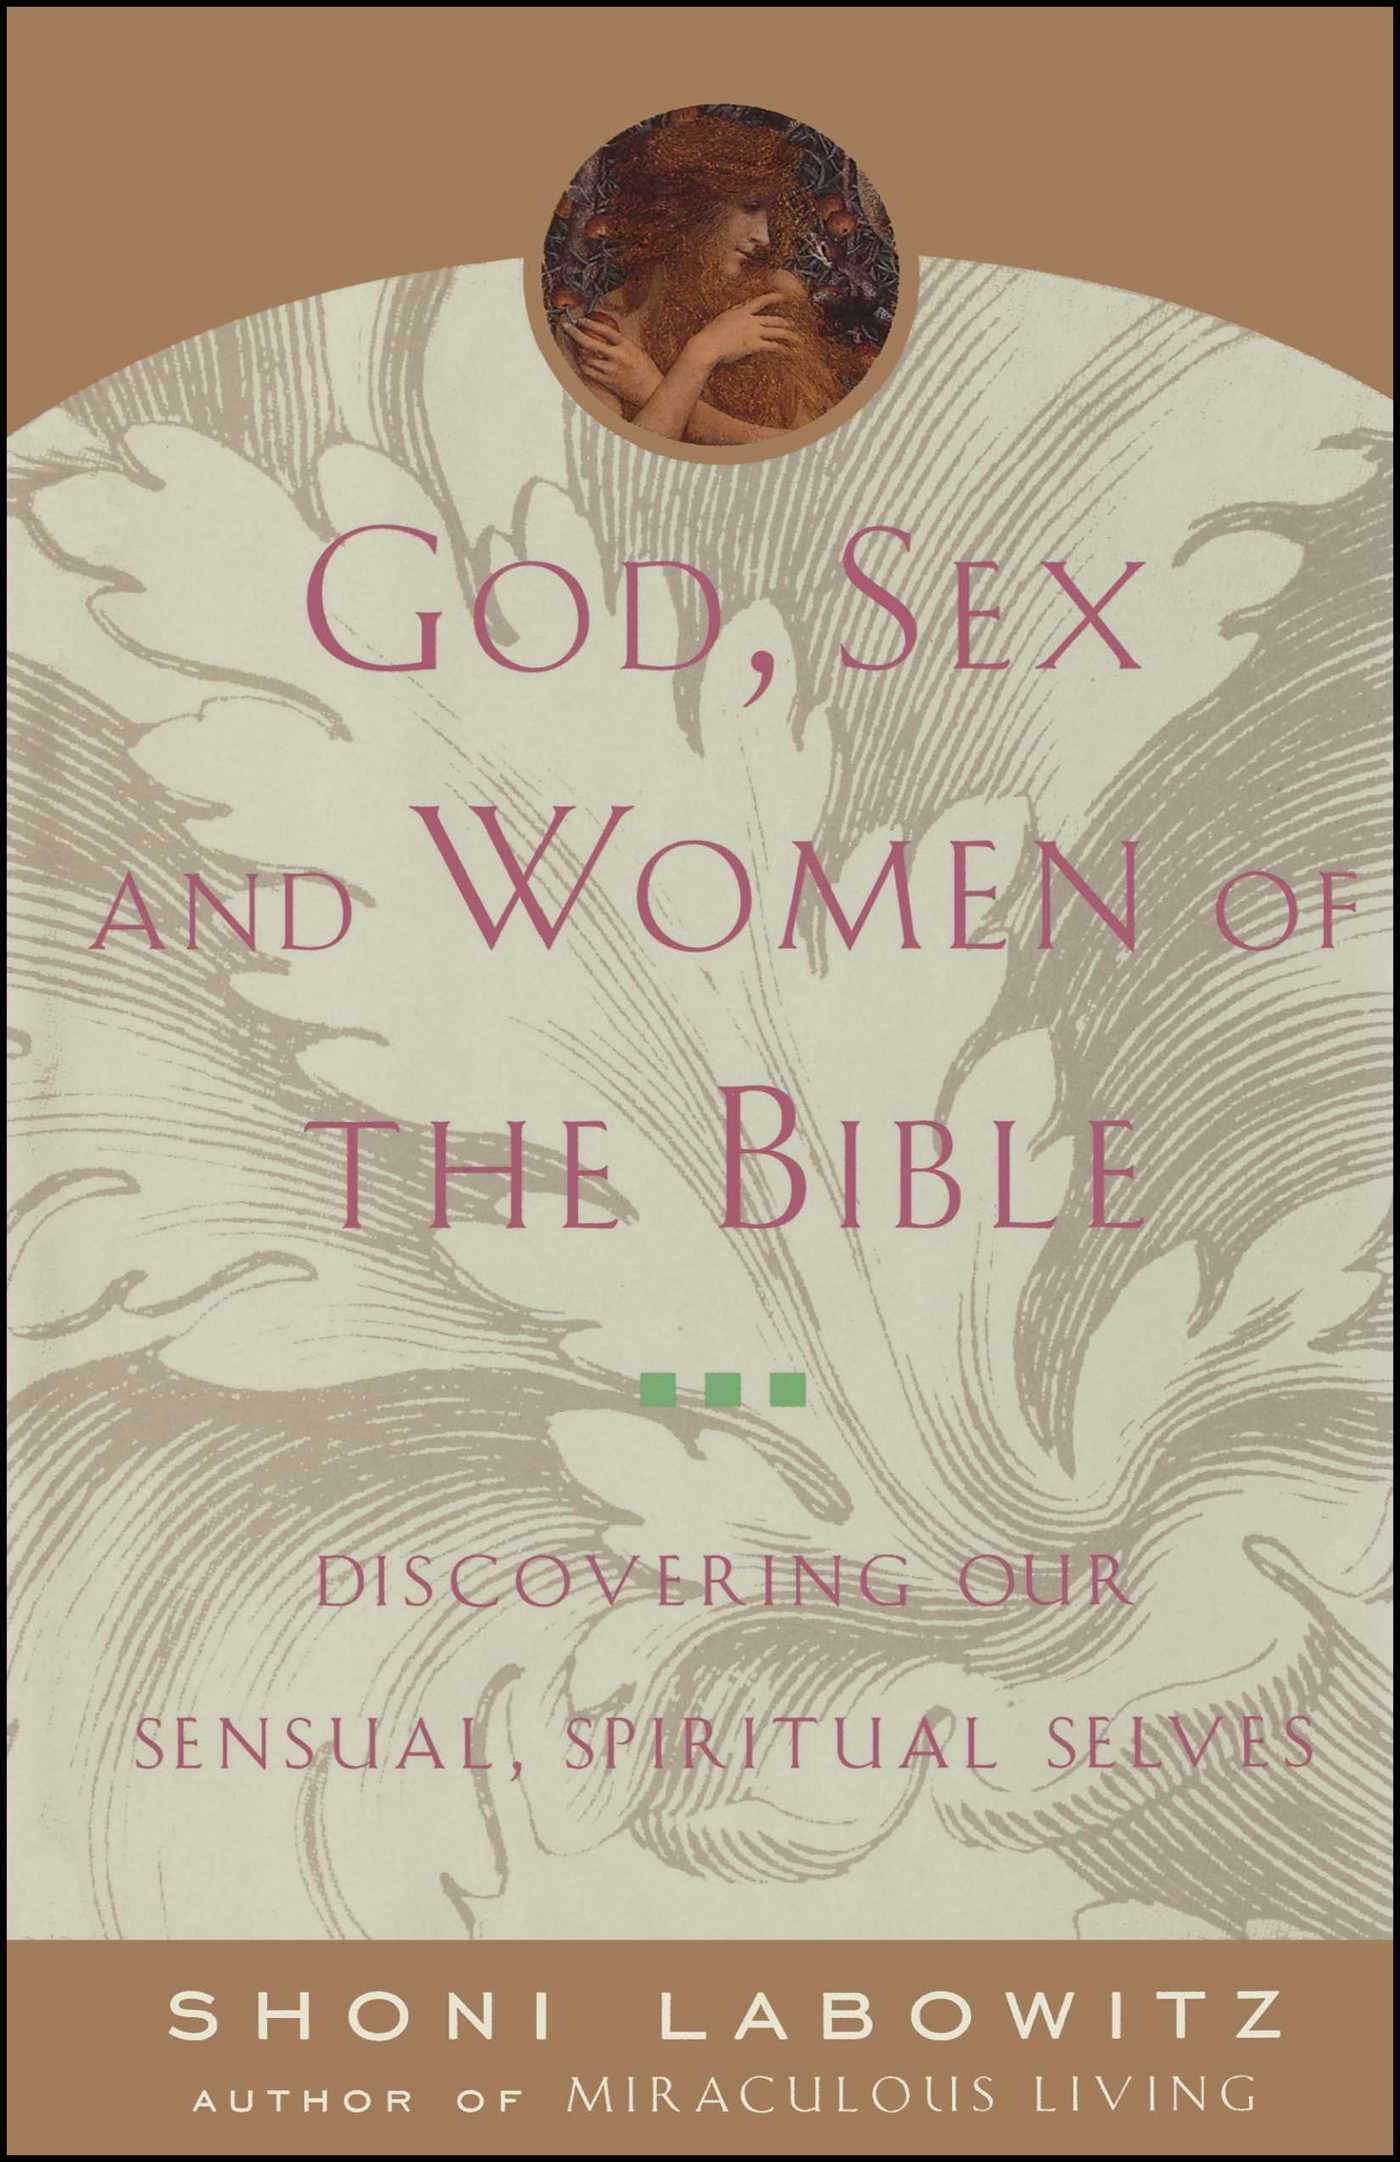 God sex and the women of the bible 9780743227858 hr